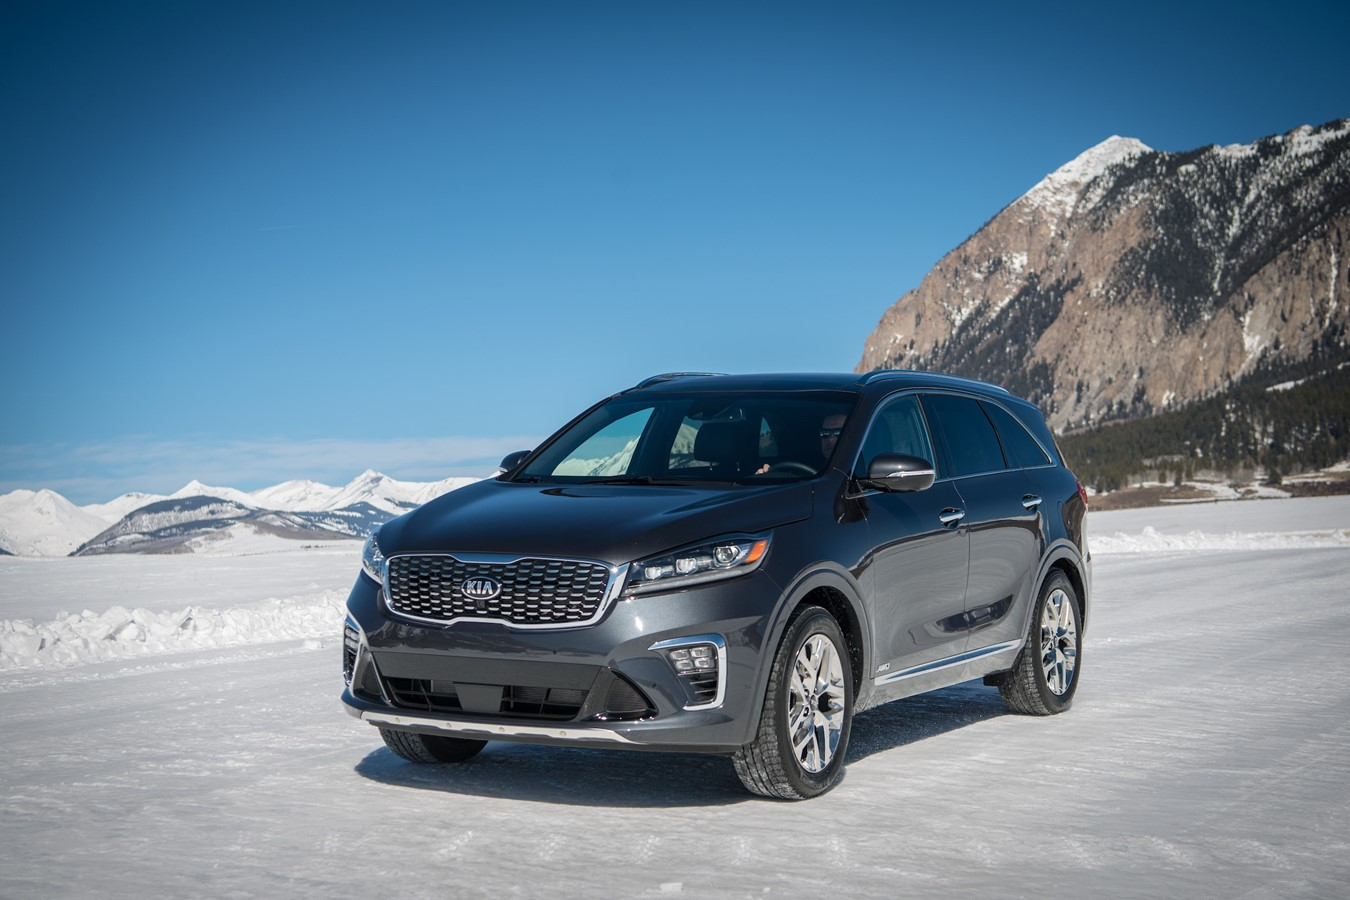 2019 Stinger and 2020 Sorento Snow Driving - 4K - Short version